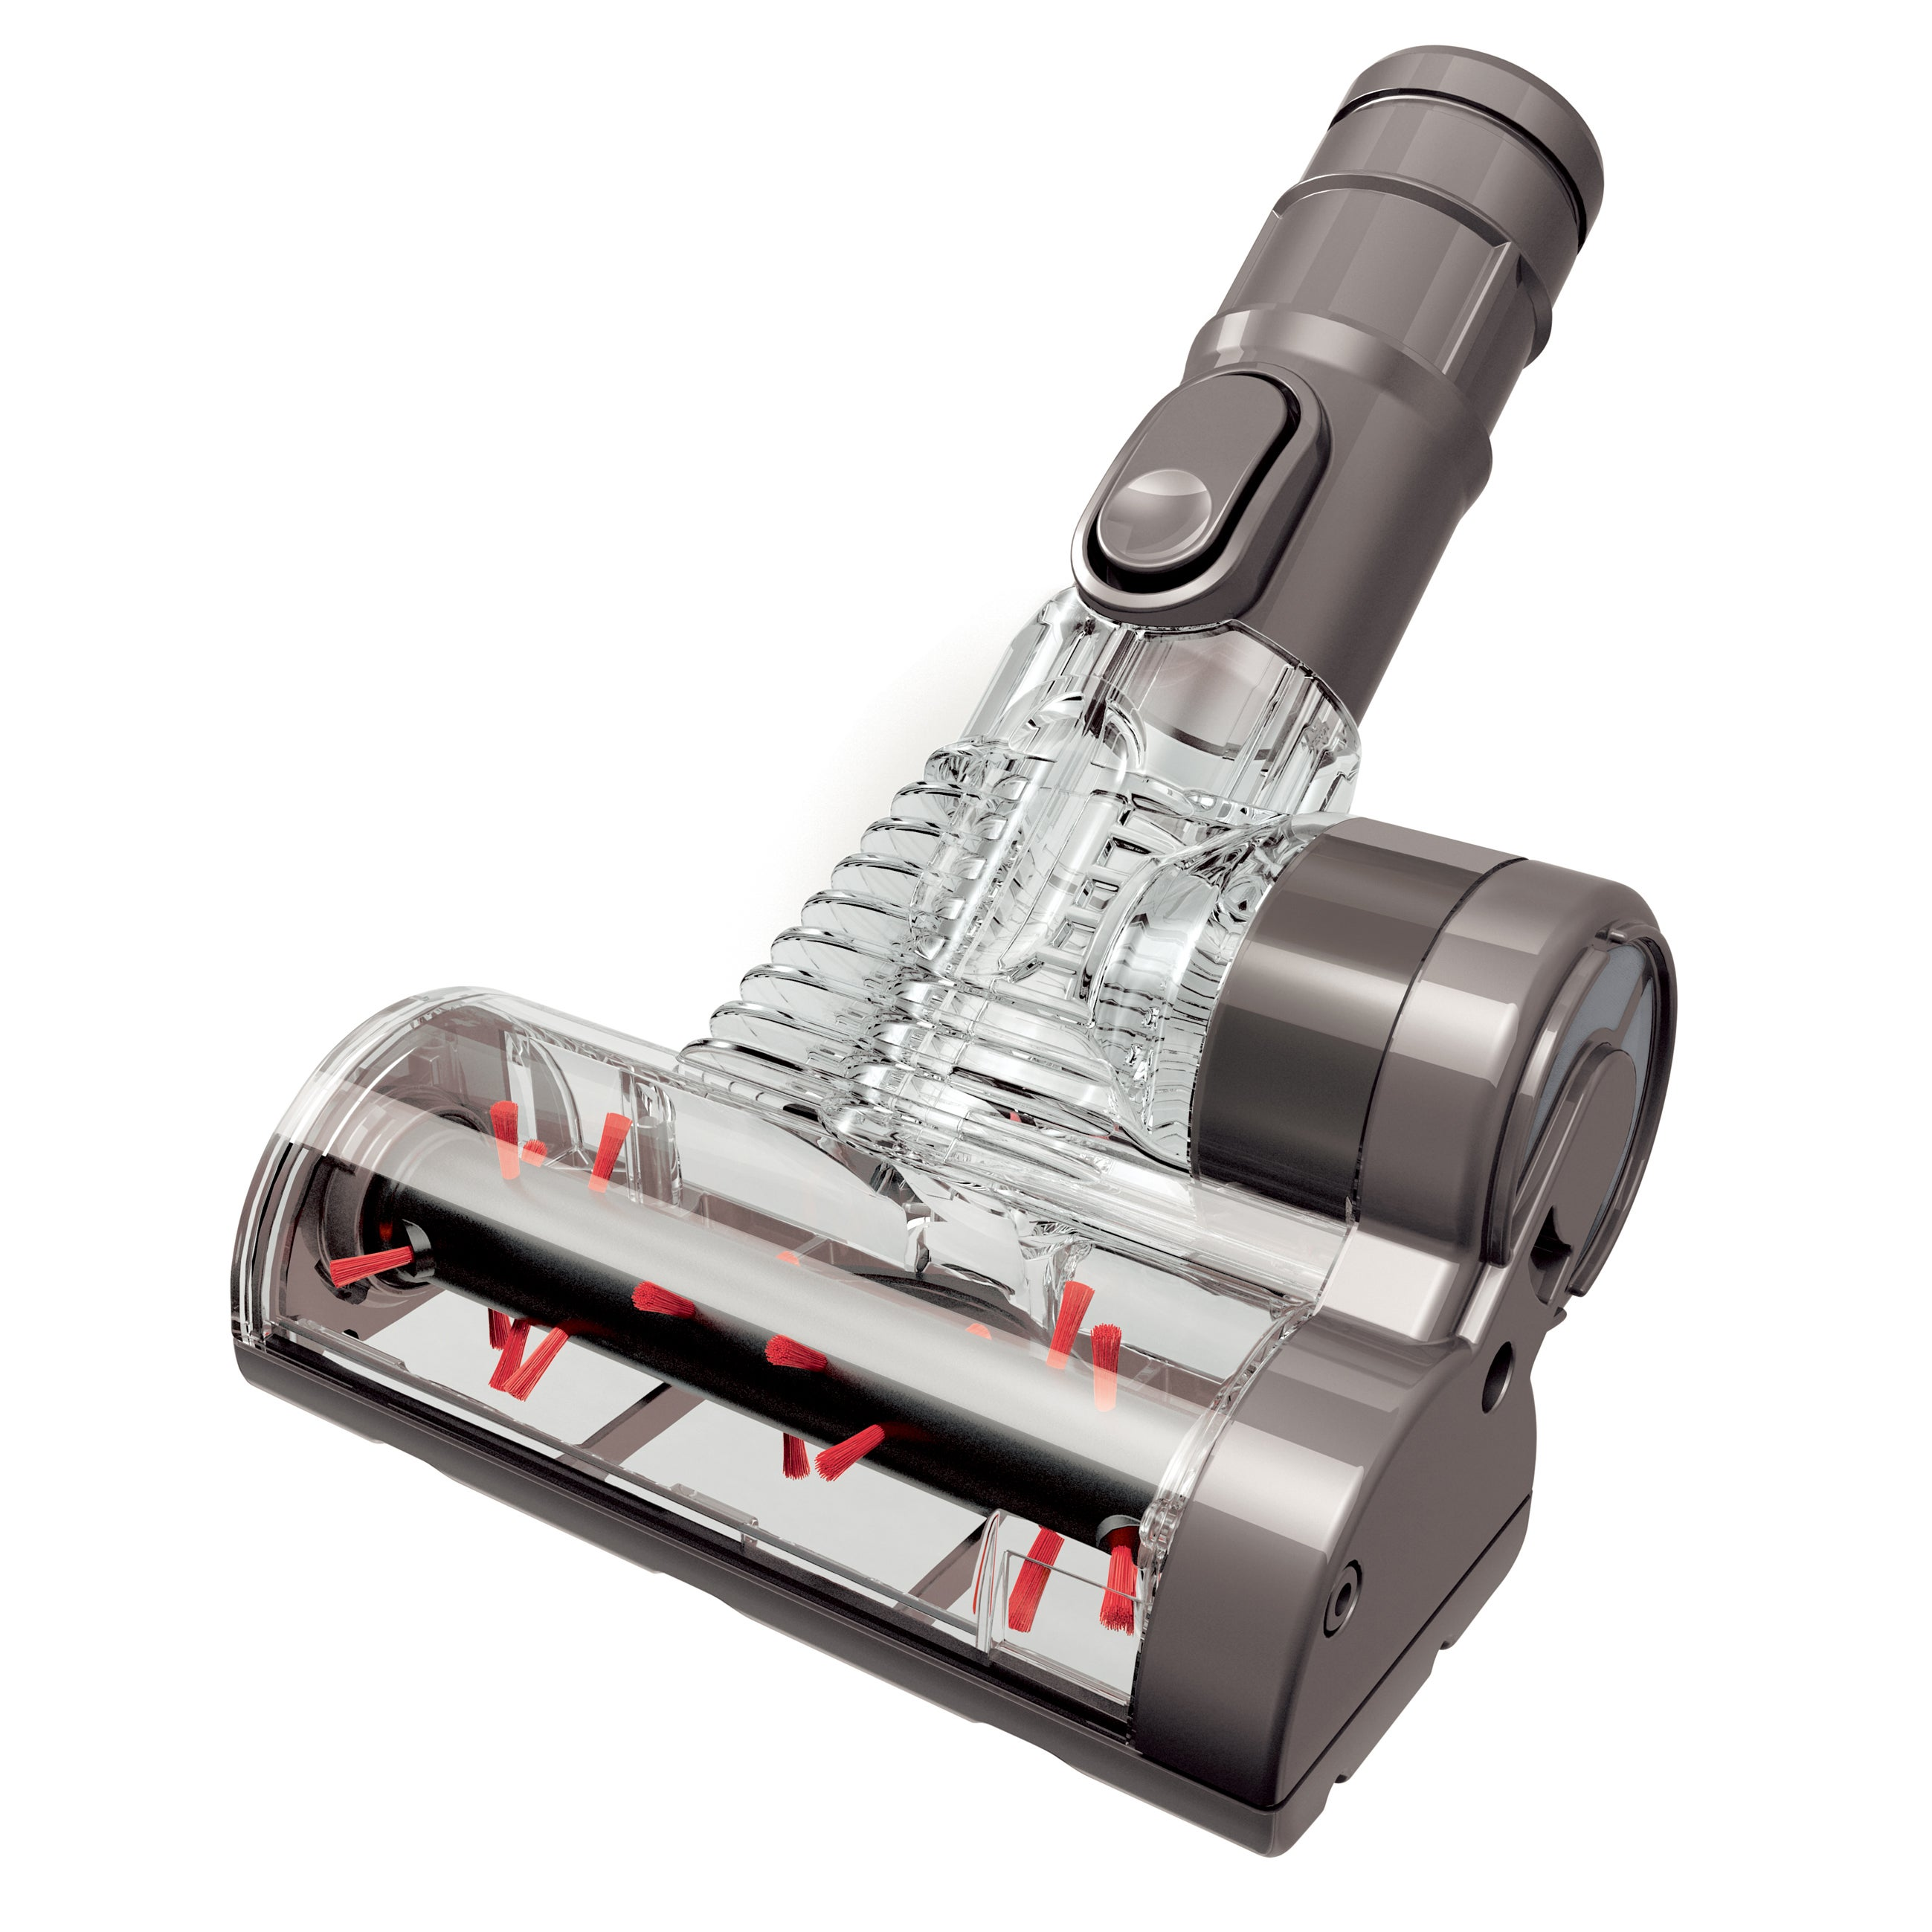 Shop Dyson DC41 Animal Upright Vacuum (Refurbished) - Free Shipping Today -  Overstock.com - 7658149